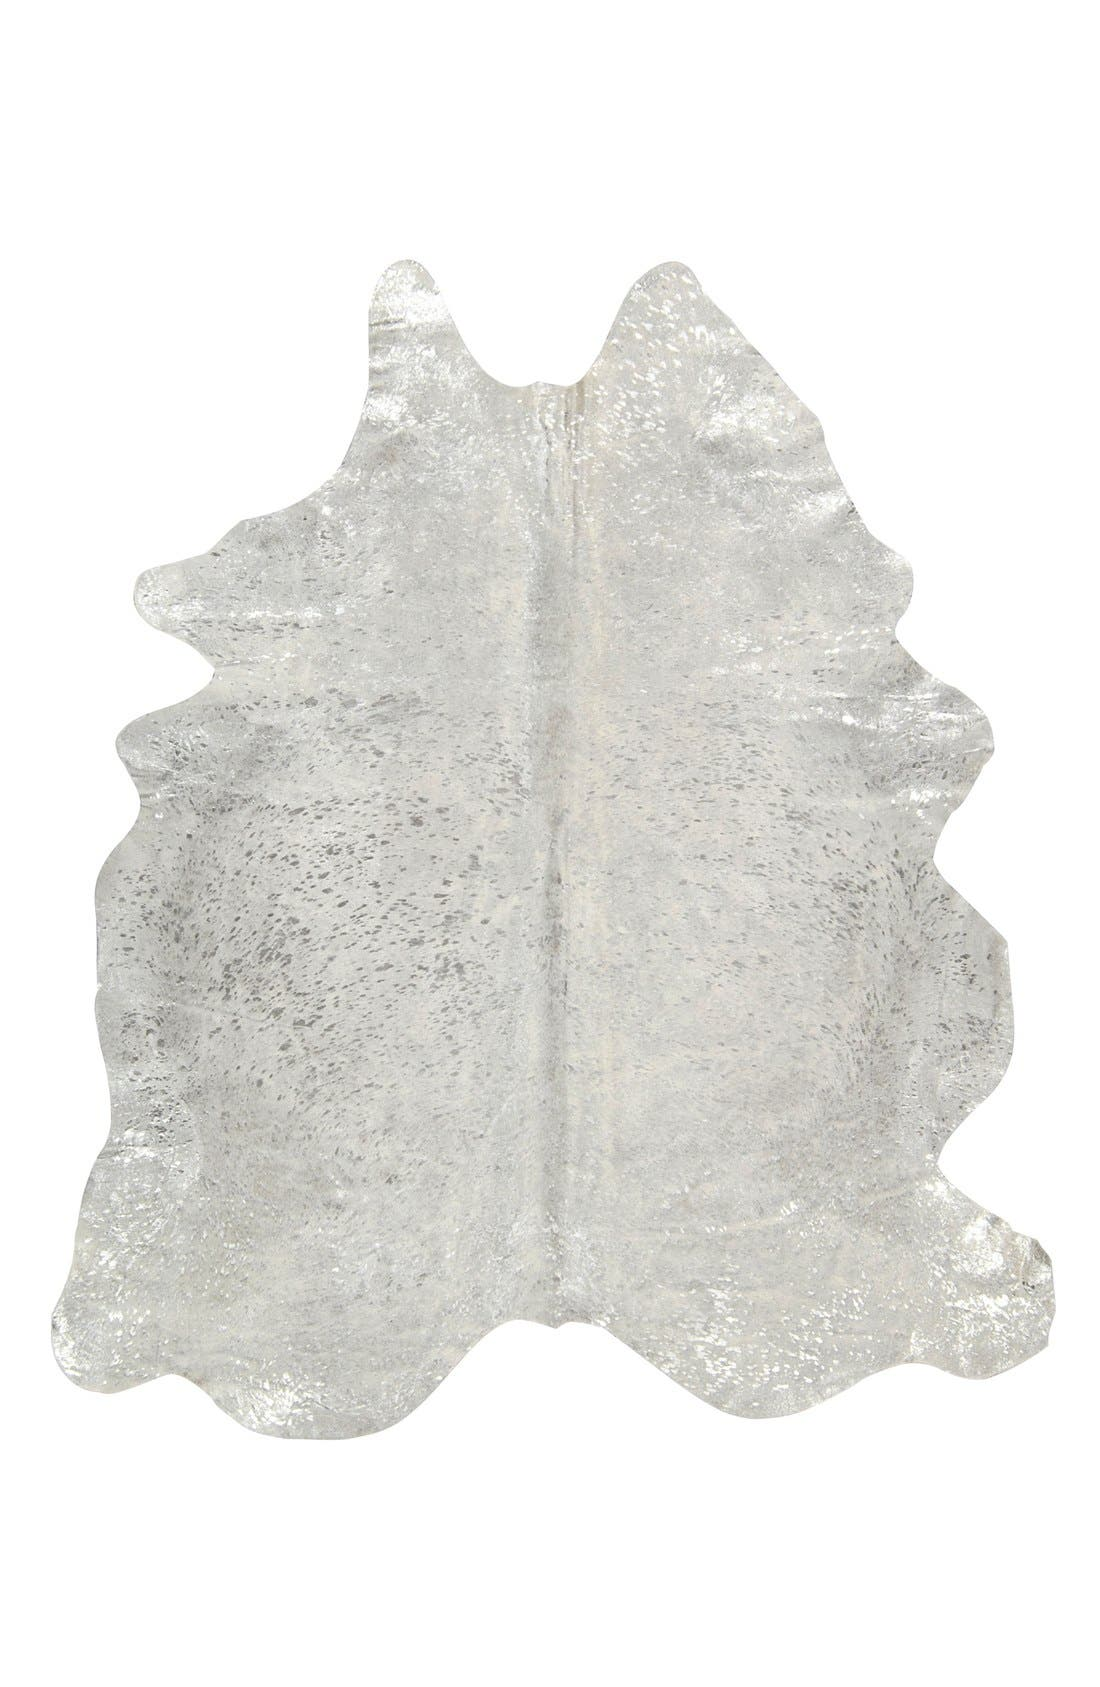 Mina Victory 'Metallic Splash' Genuine Cowhide Rug